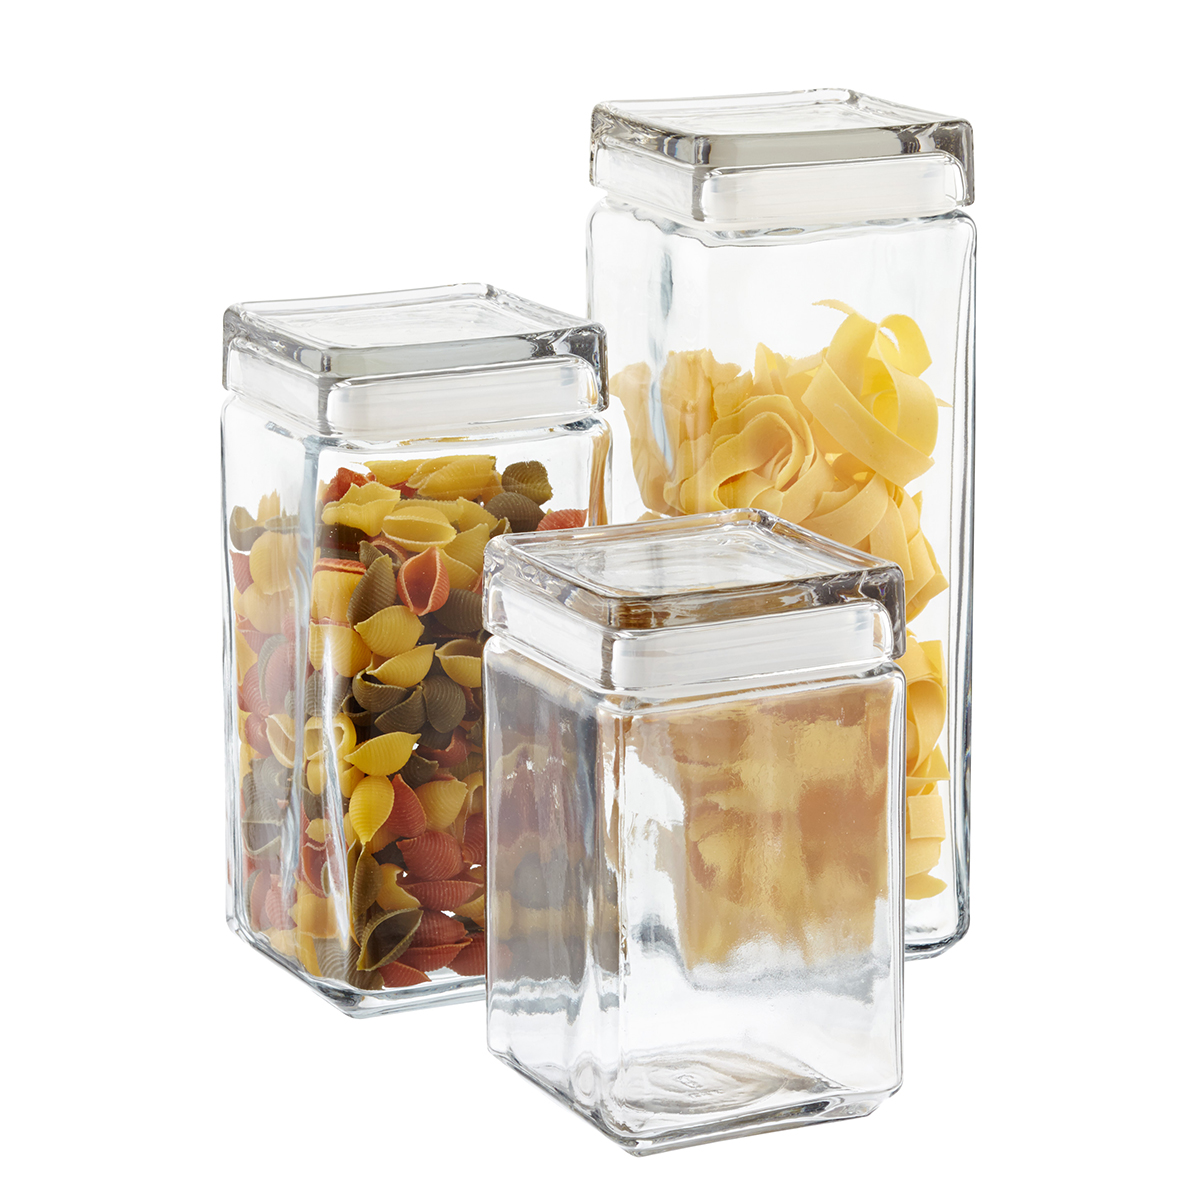 Anchor Hocking Stackable Square Glass Canisters